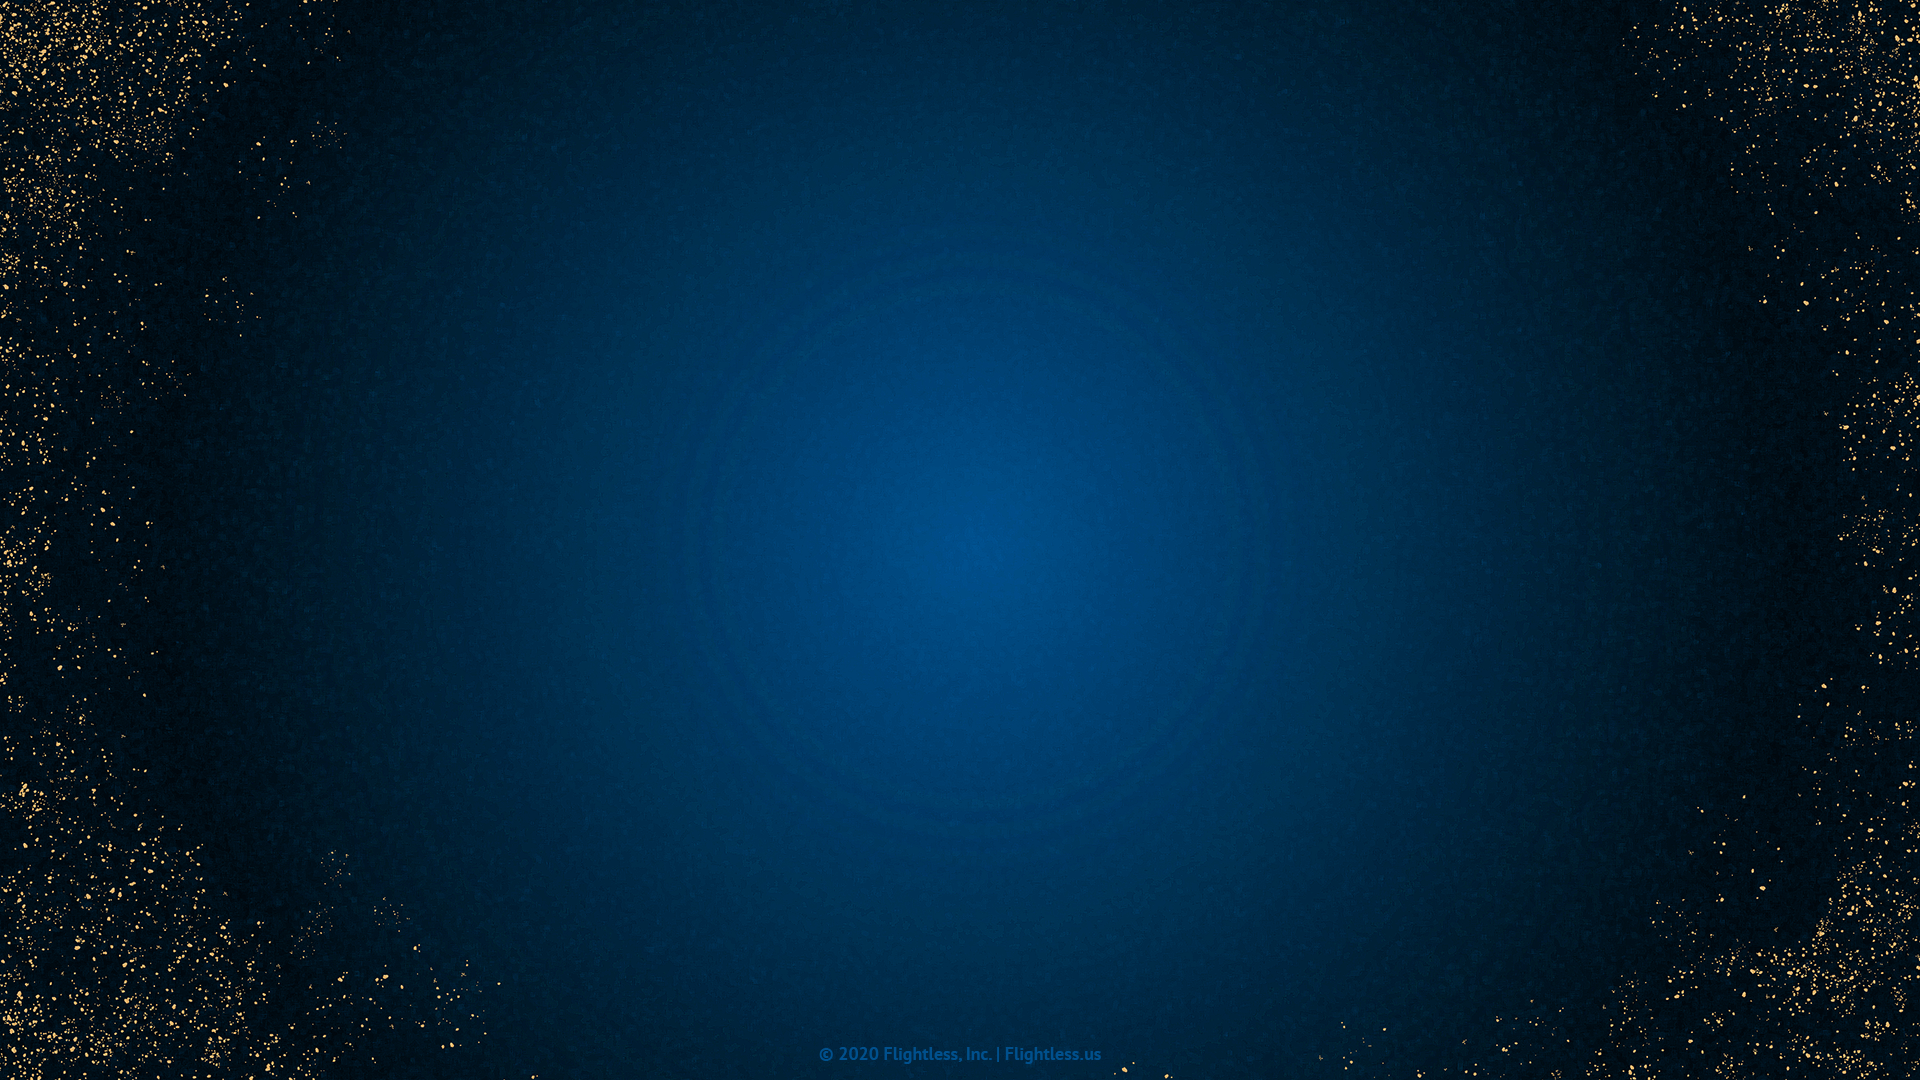 Blue Zoom Background with Gold Flecks